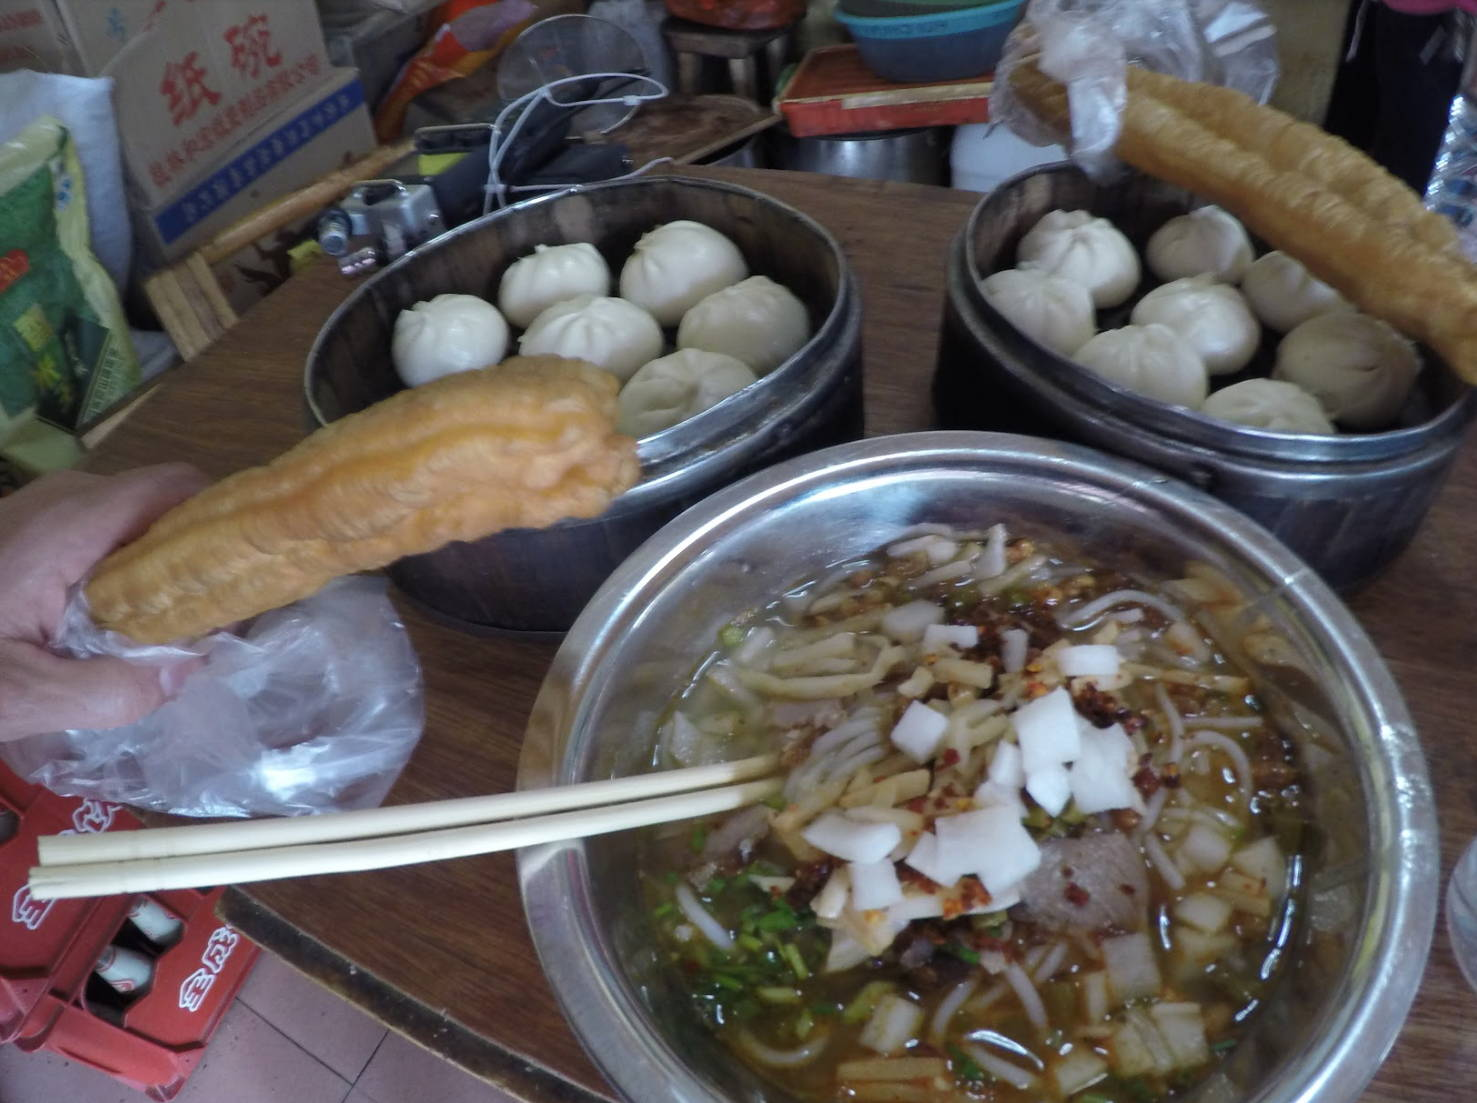 Eating noodles and street food in china